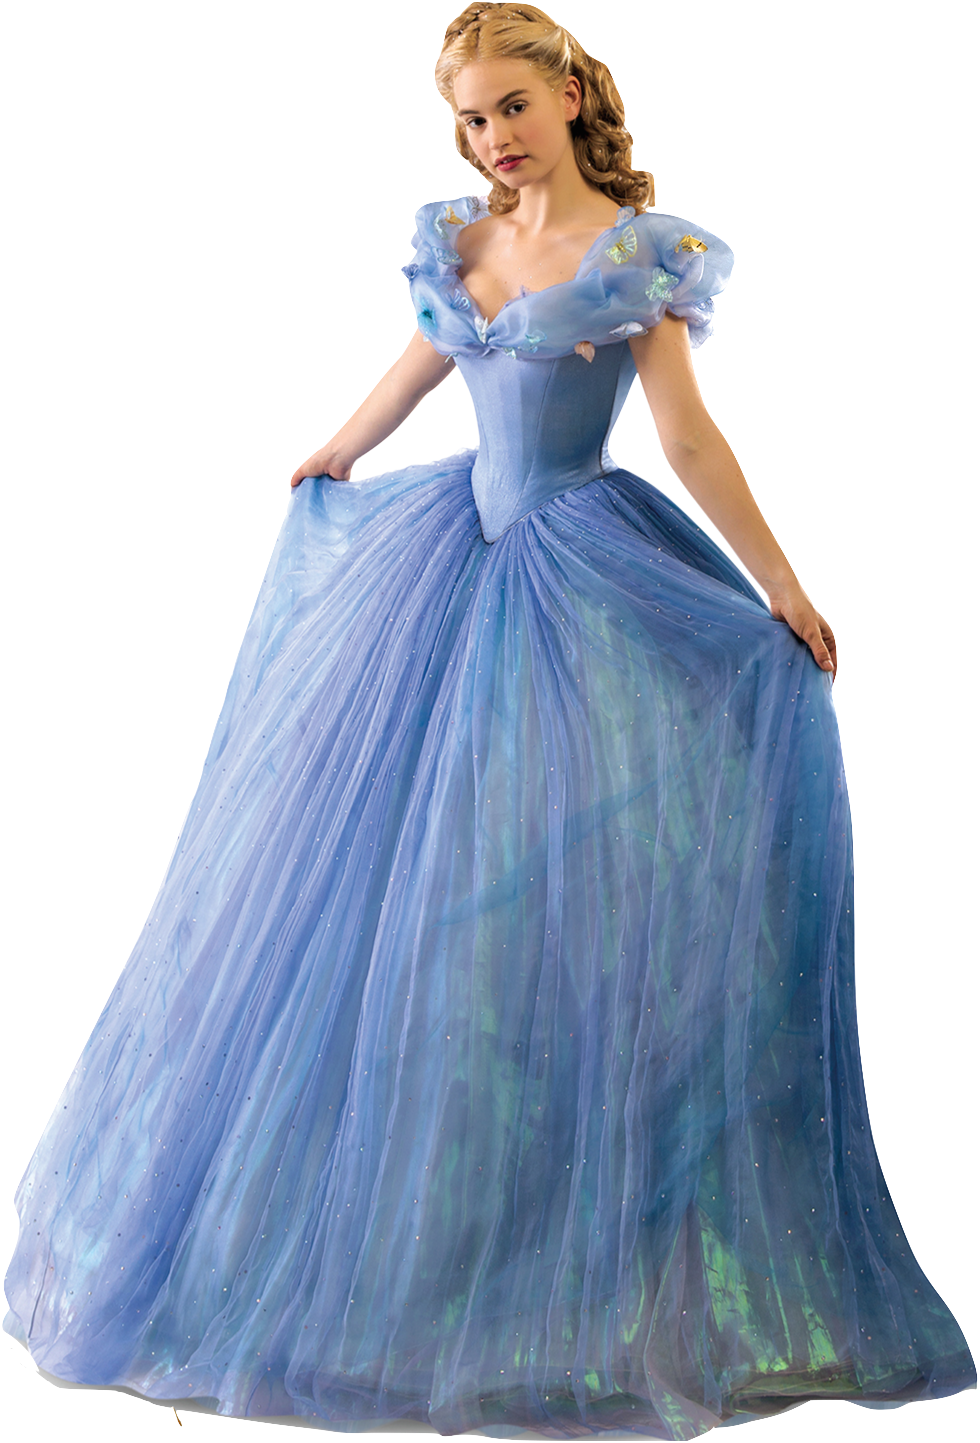 Lily james as cinderella full body 2 png by for Full body wedding dress